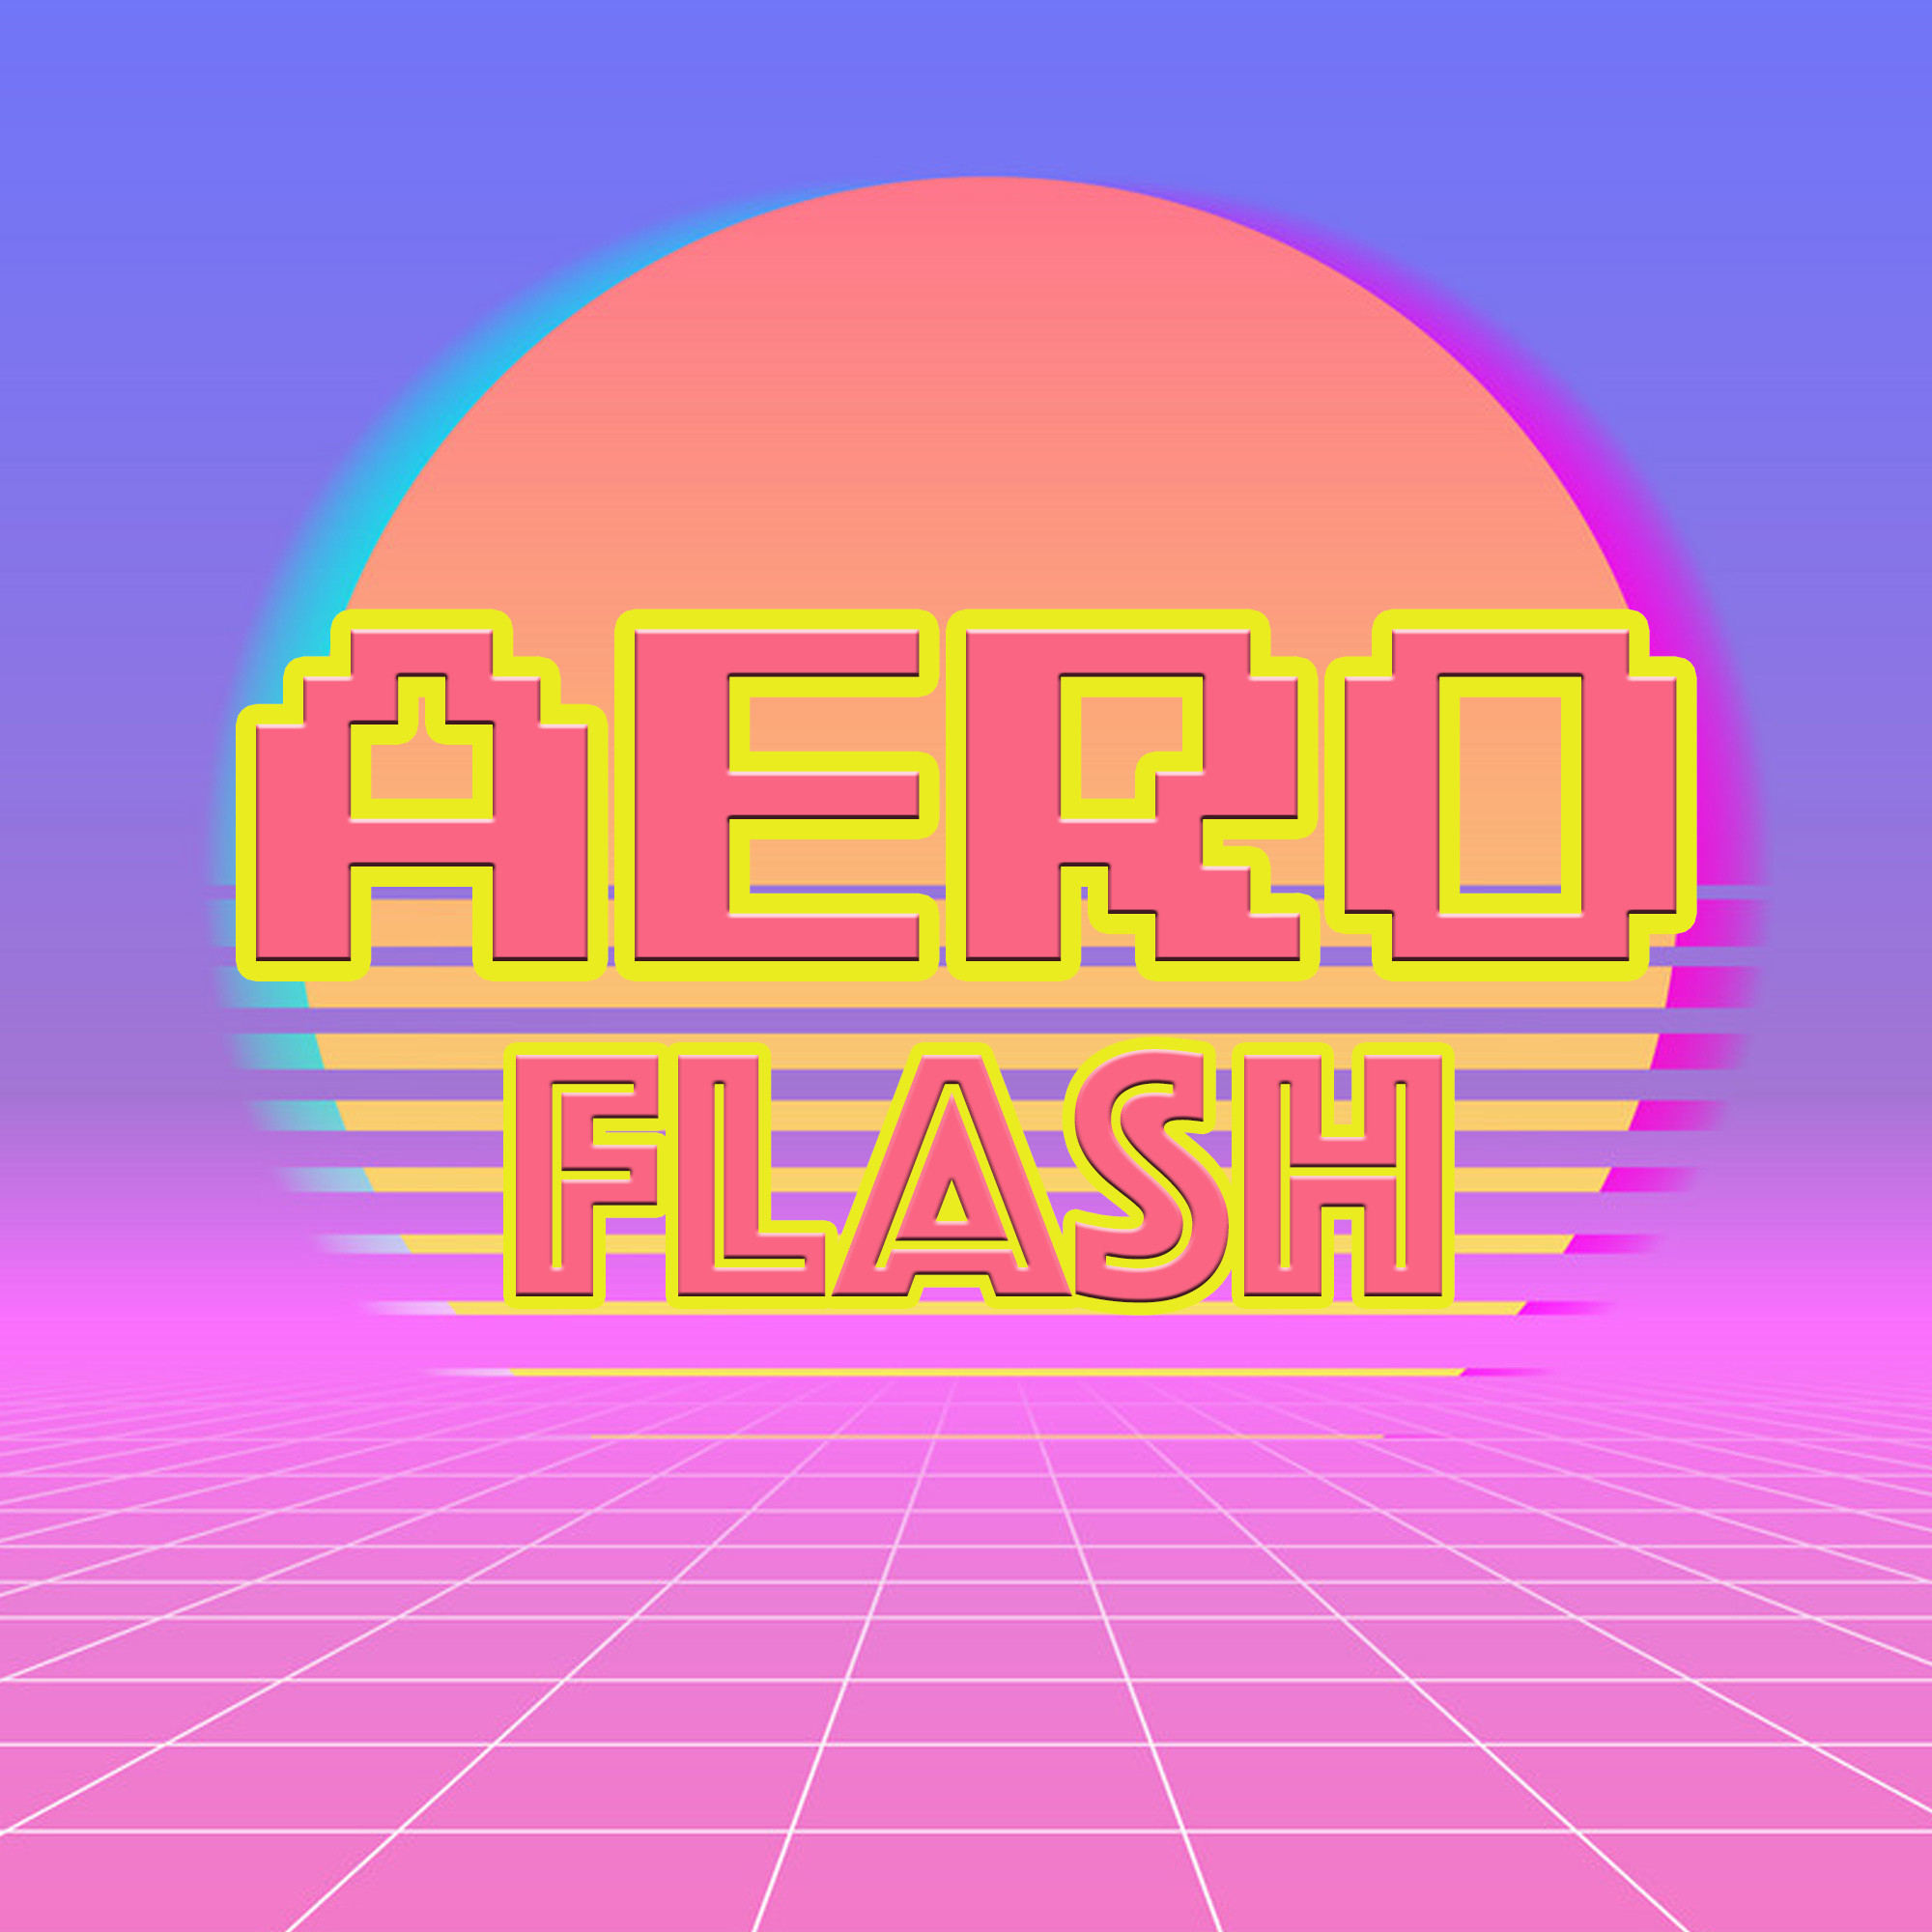 AERO FLASH by This is Arnold